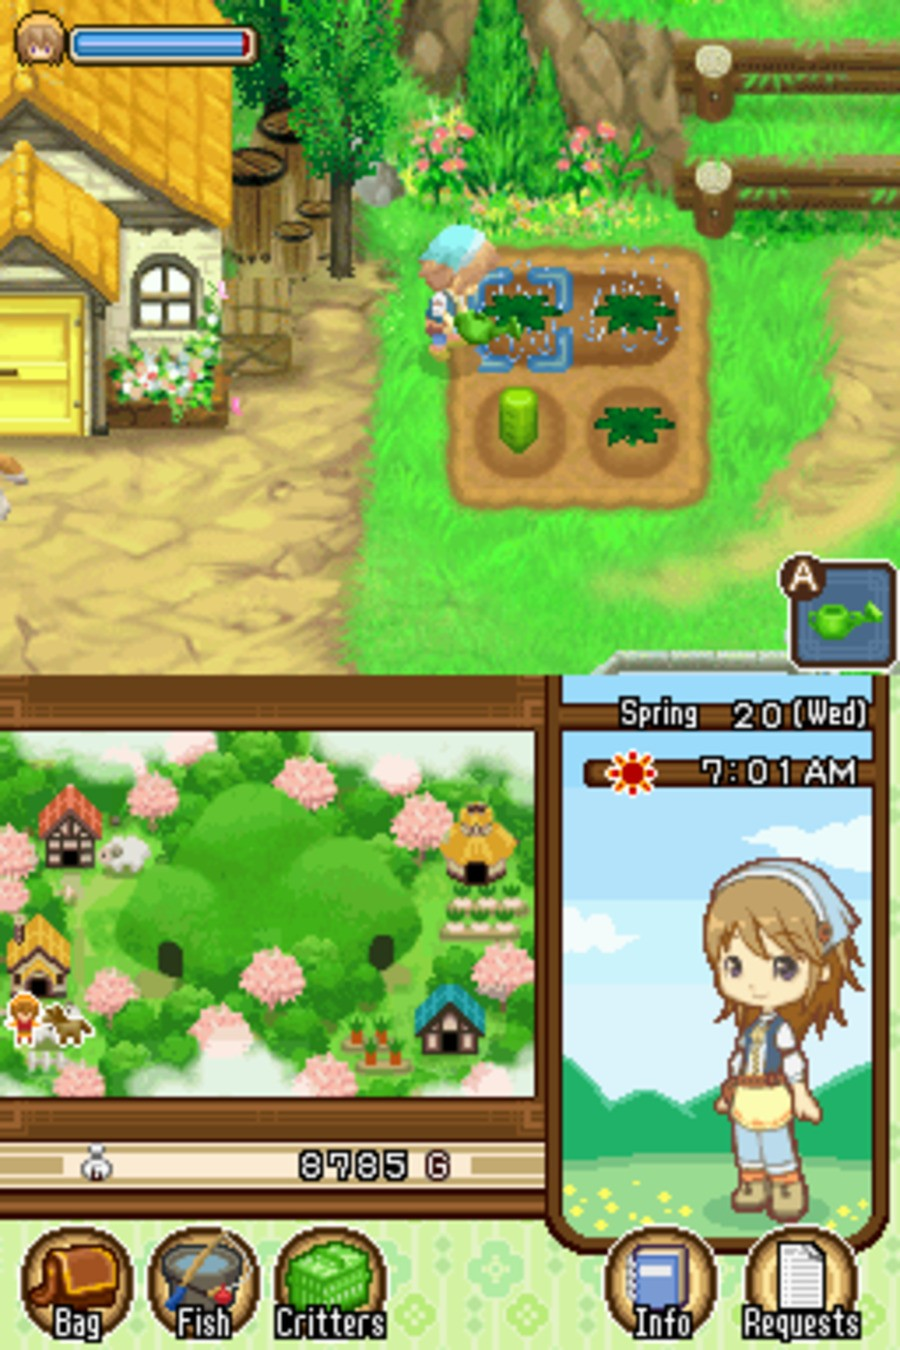 Harvest Moon DS: The Tale of Two Towns Screenshot